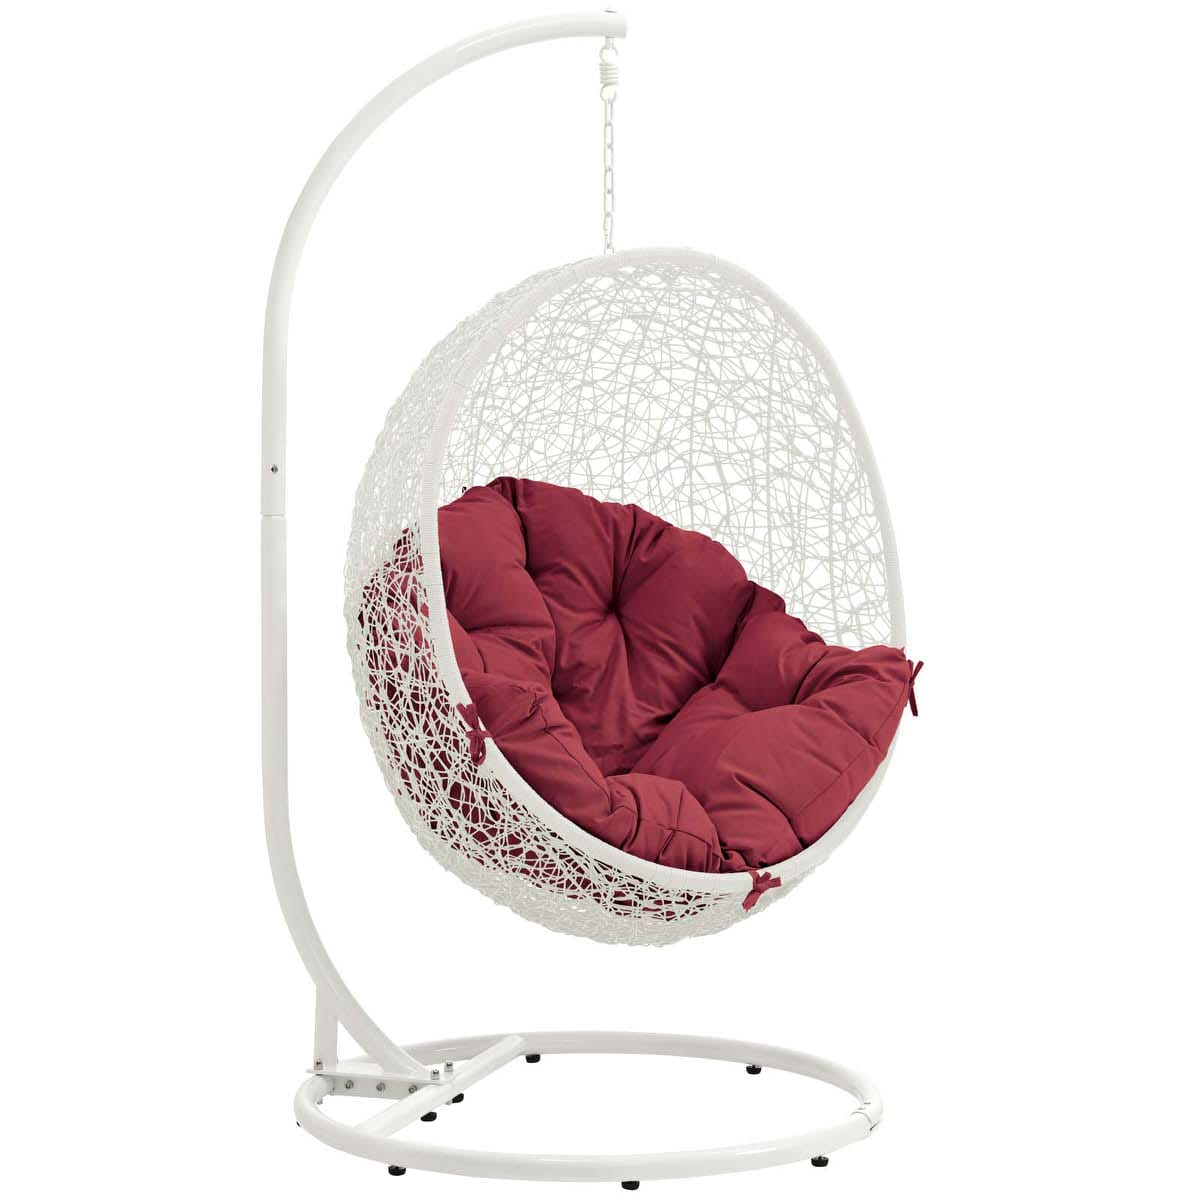 Hide Outdoor Patio Swing Chair With Stand White Red By Modern Living  (Modern Living)